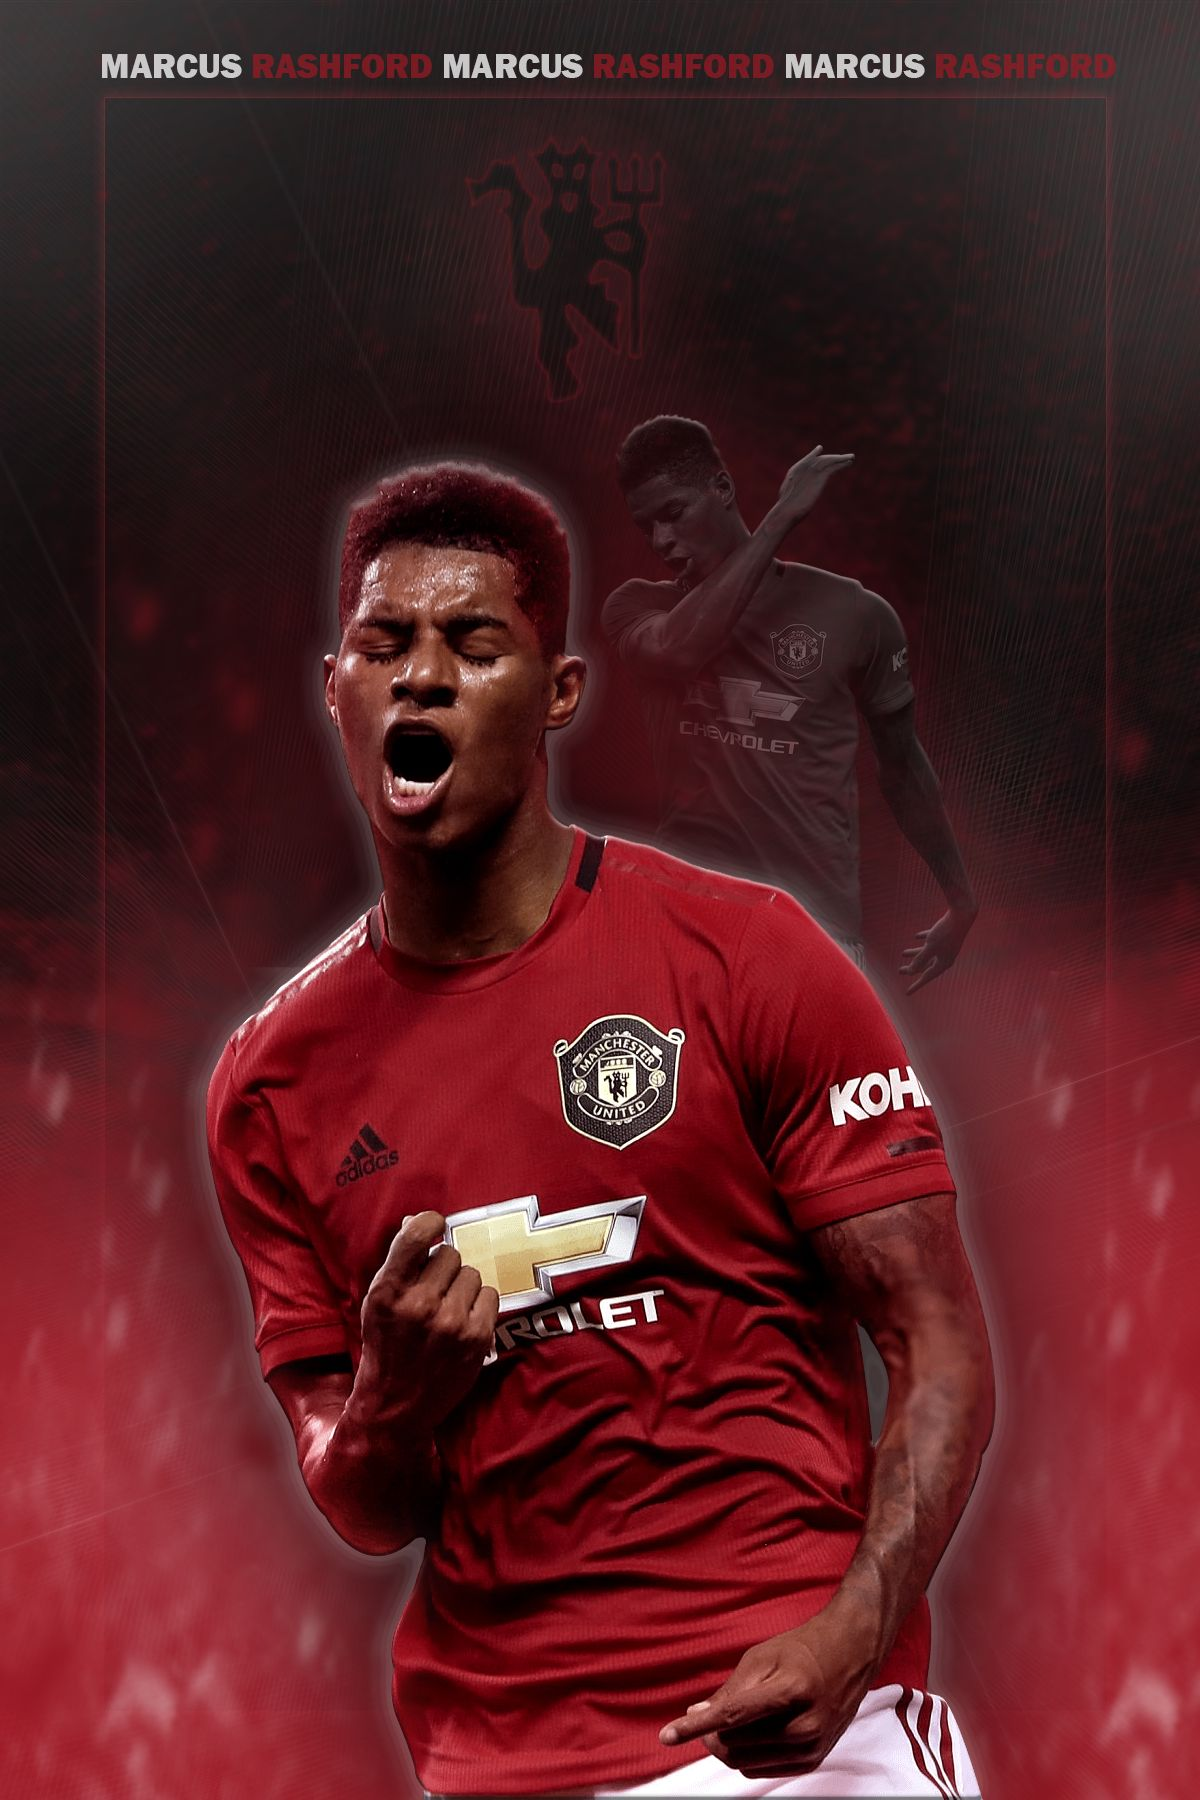 Manchester United 2020 Wallpapers Wallpaper Cave Manchester United 2019 Wallpape In 2020 Manchester United Players Manchester United Wallpaper Manchester United Logo